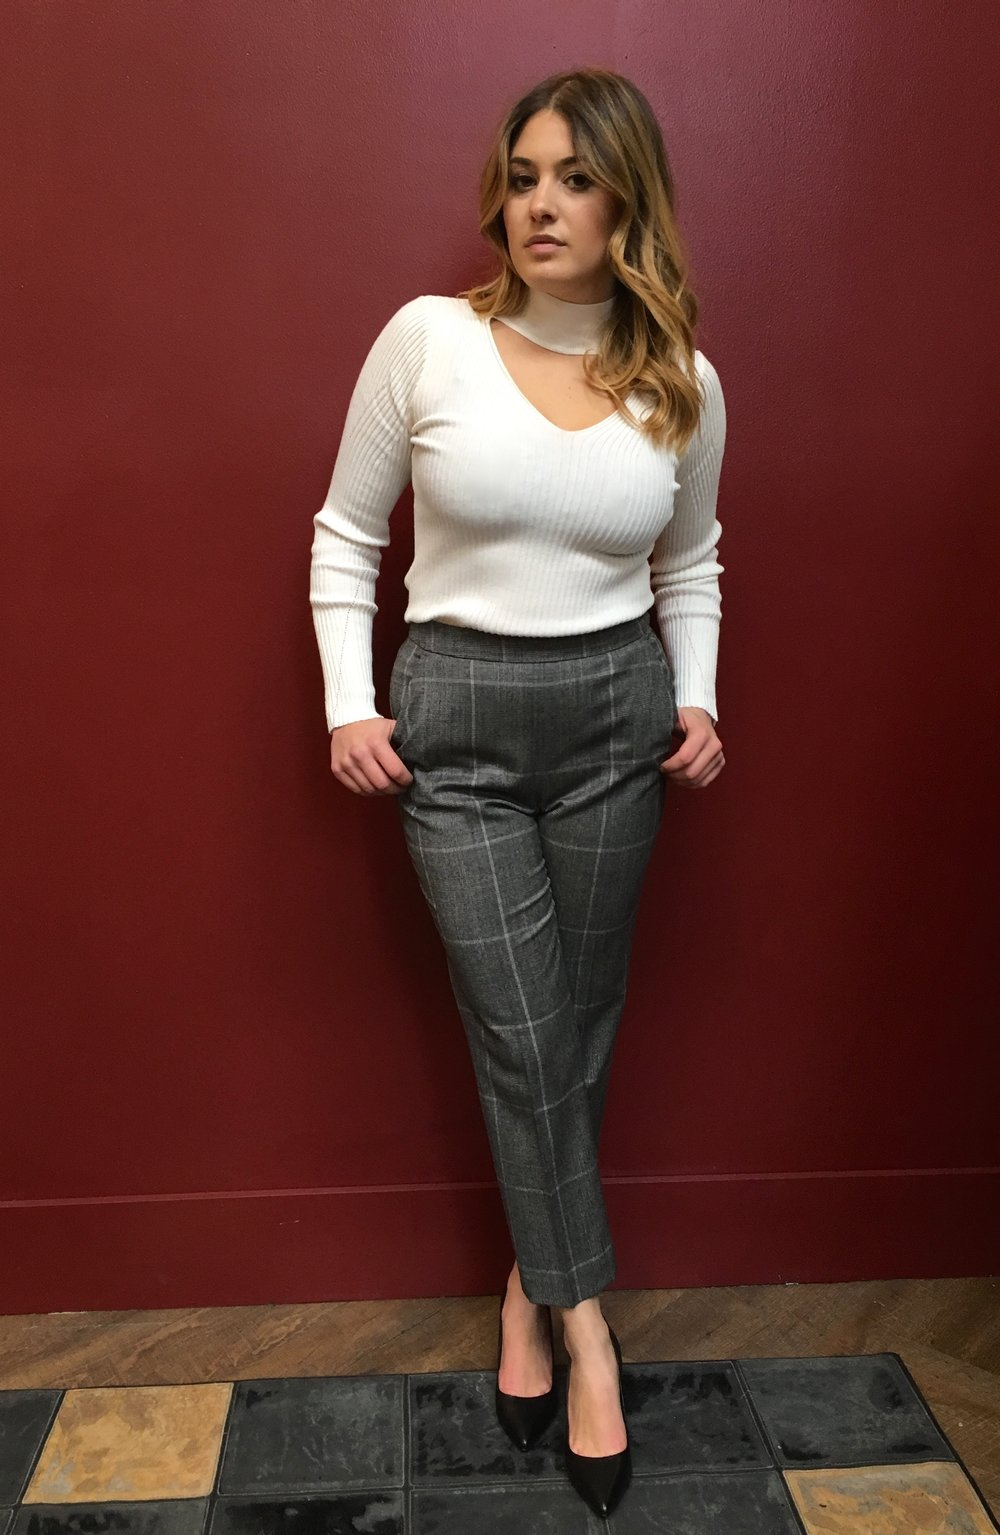 John & Jenn Sweater $149 Tiger of Sweden Wool Pants $299 Tiger of Sweden Leather Heels $249 Go from the office to post work drinks in this outfit